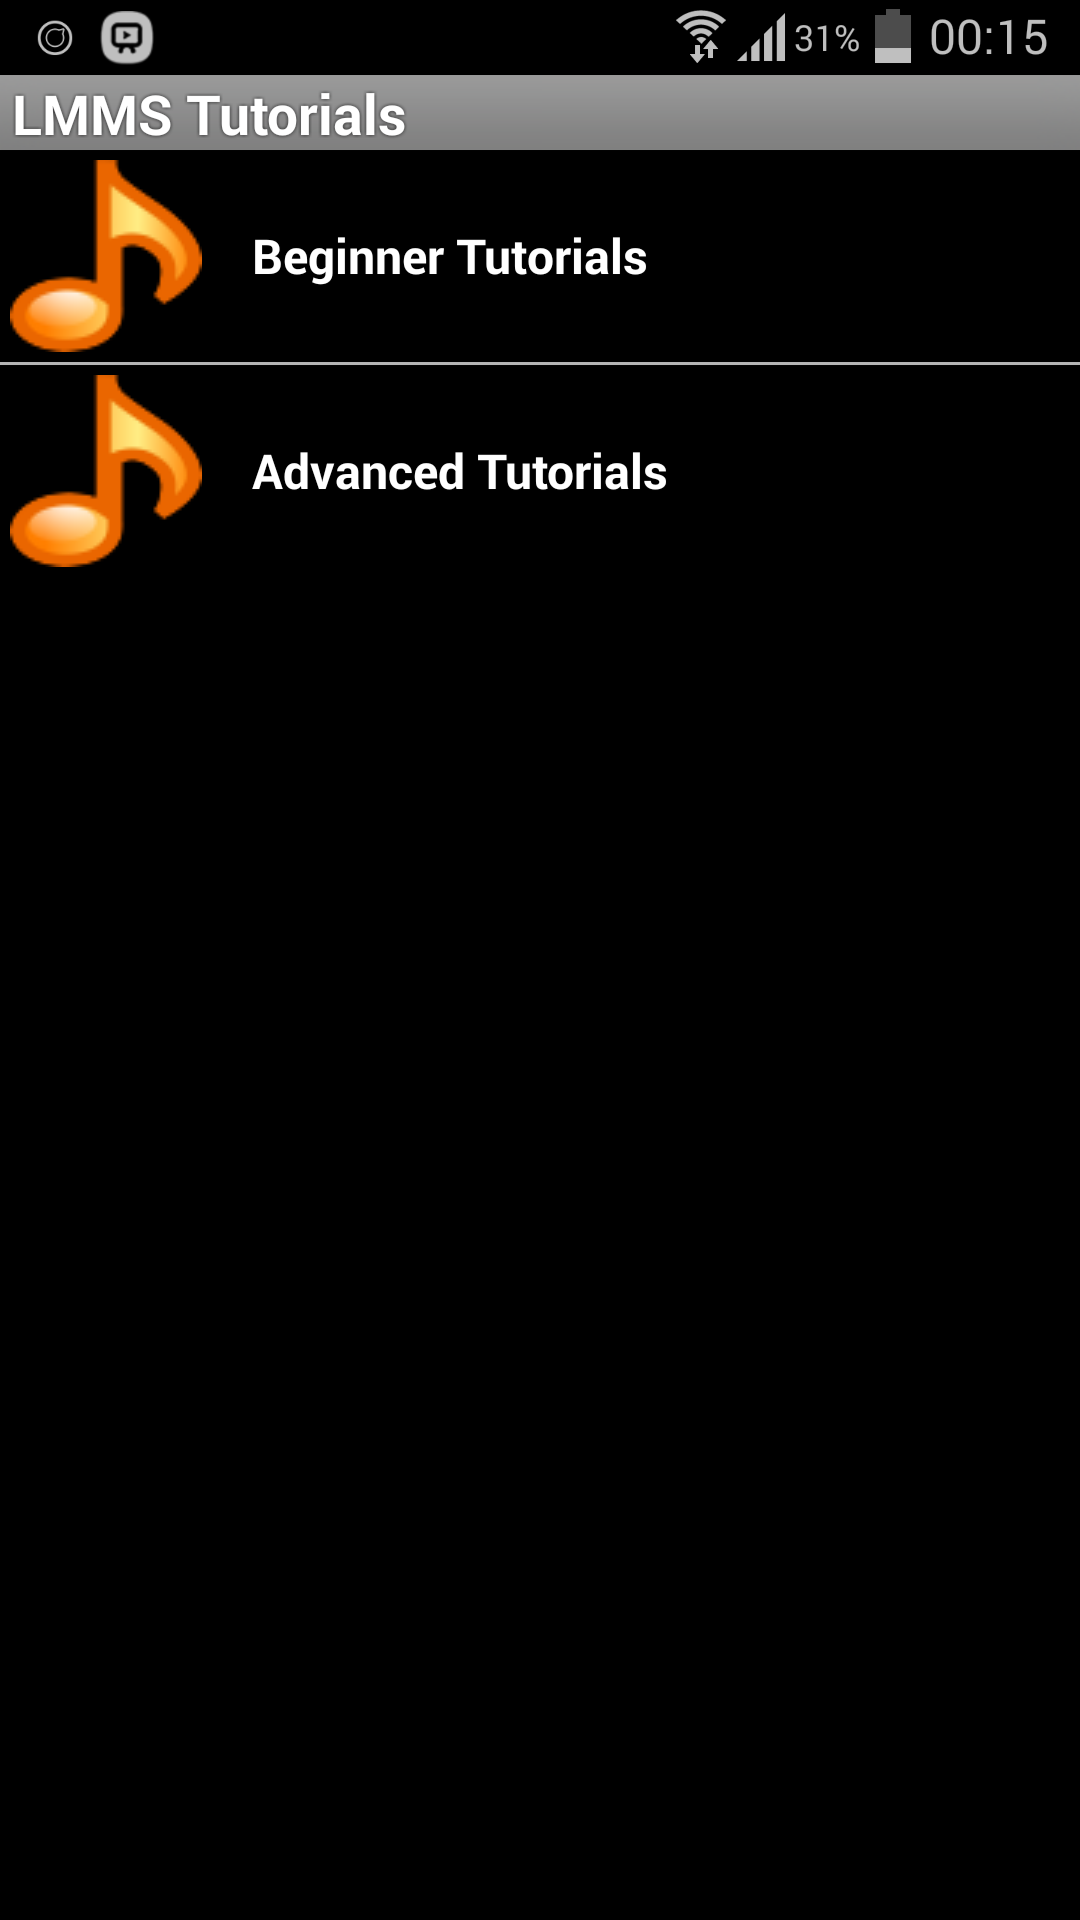 Amazon com: LMMS Tutorials: Appstore for Android